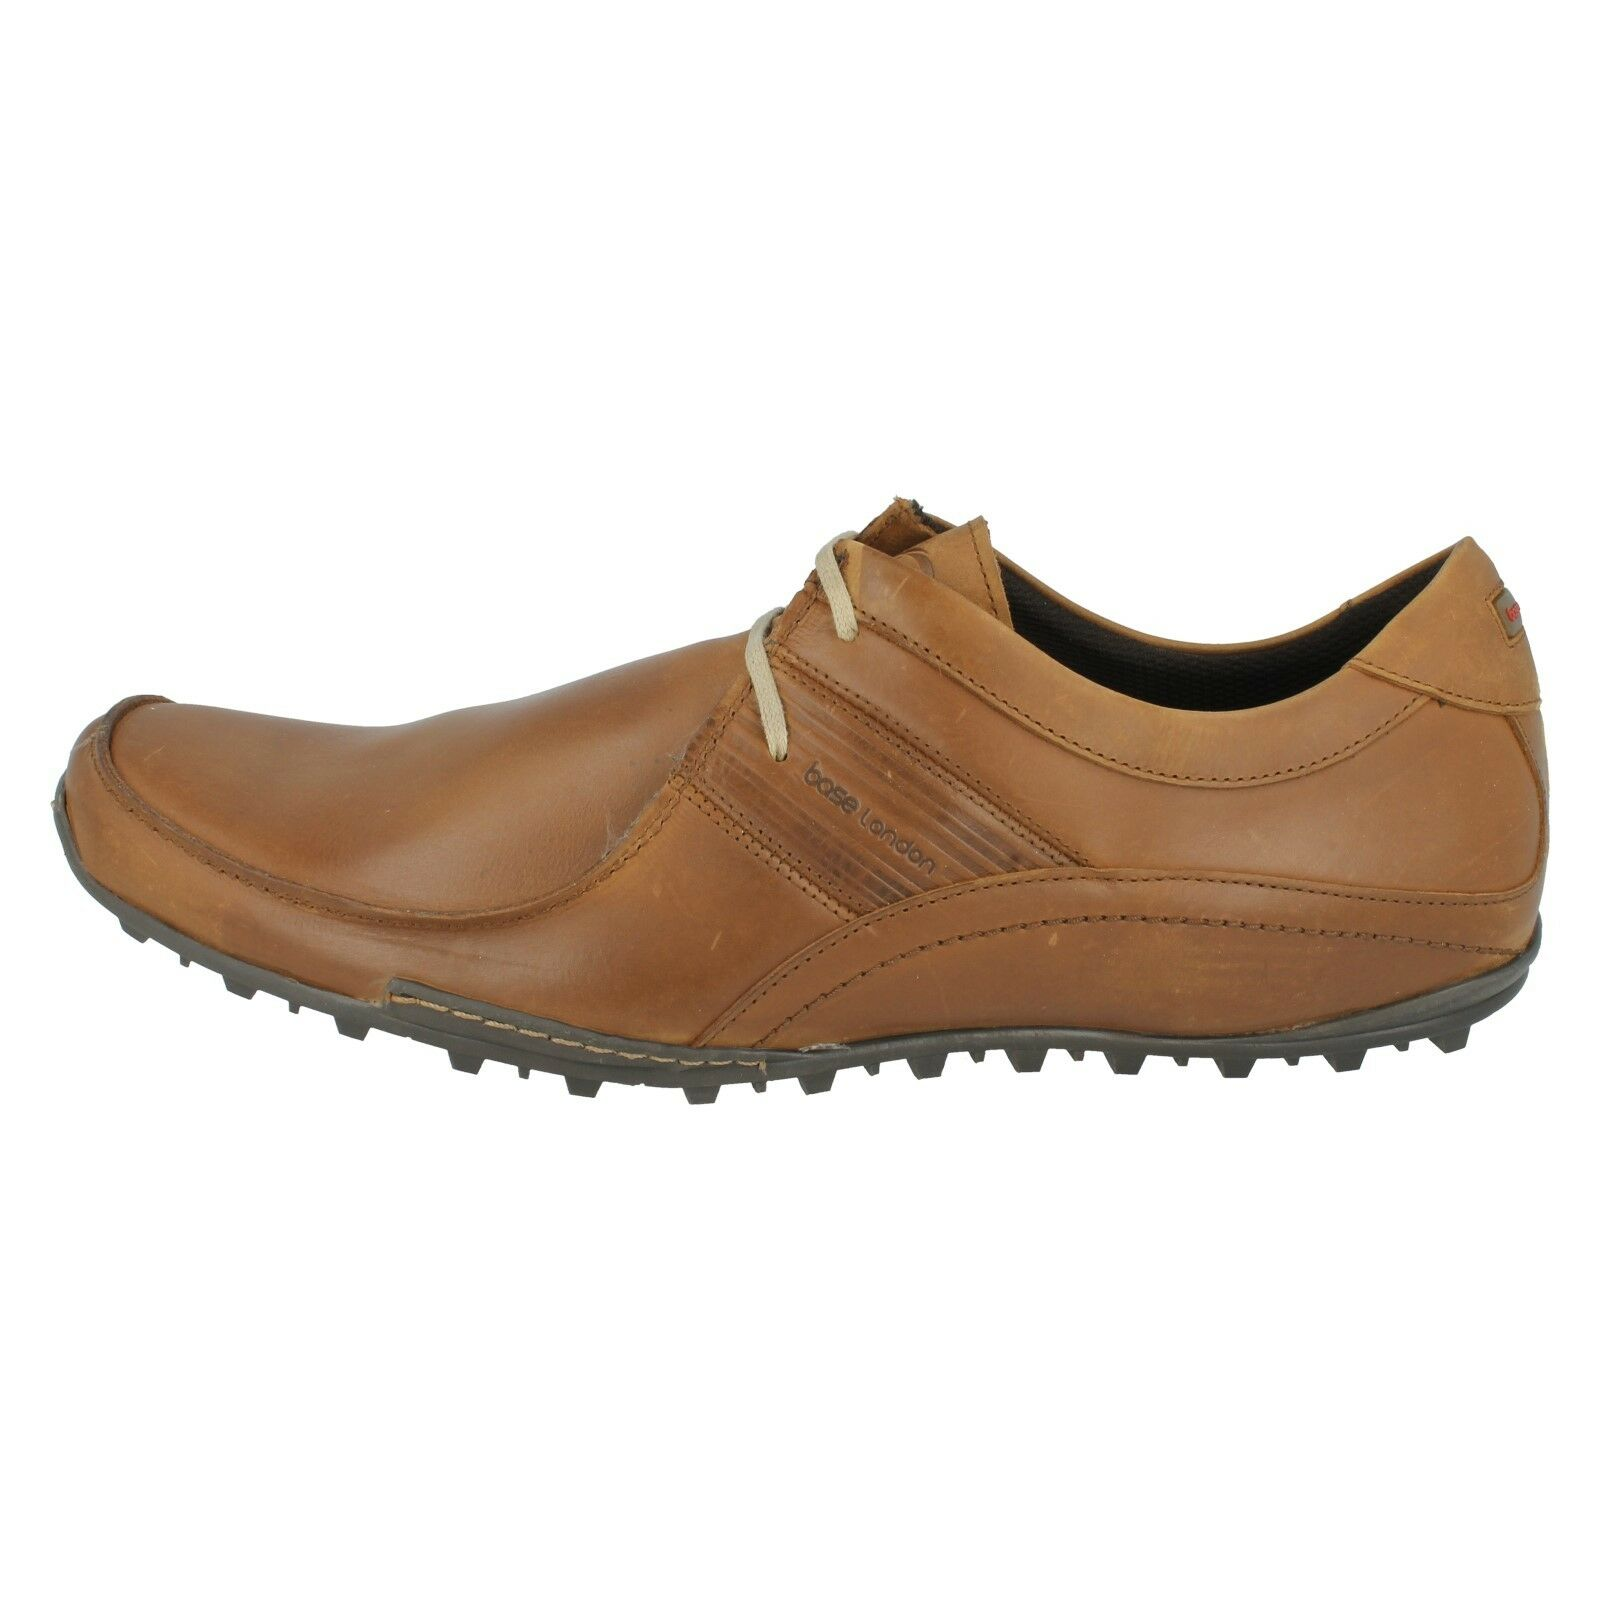 Uomo CASUAL BASE LONDON SPRING EXCEL CASUAL Uomo WAXY BLACK TAN LEATHER LACE UP SHOES f81ddc